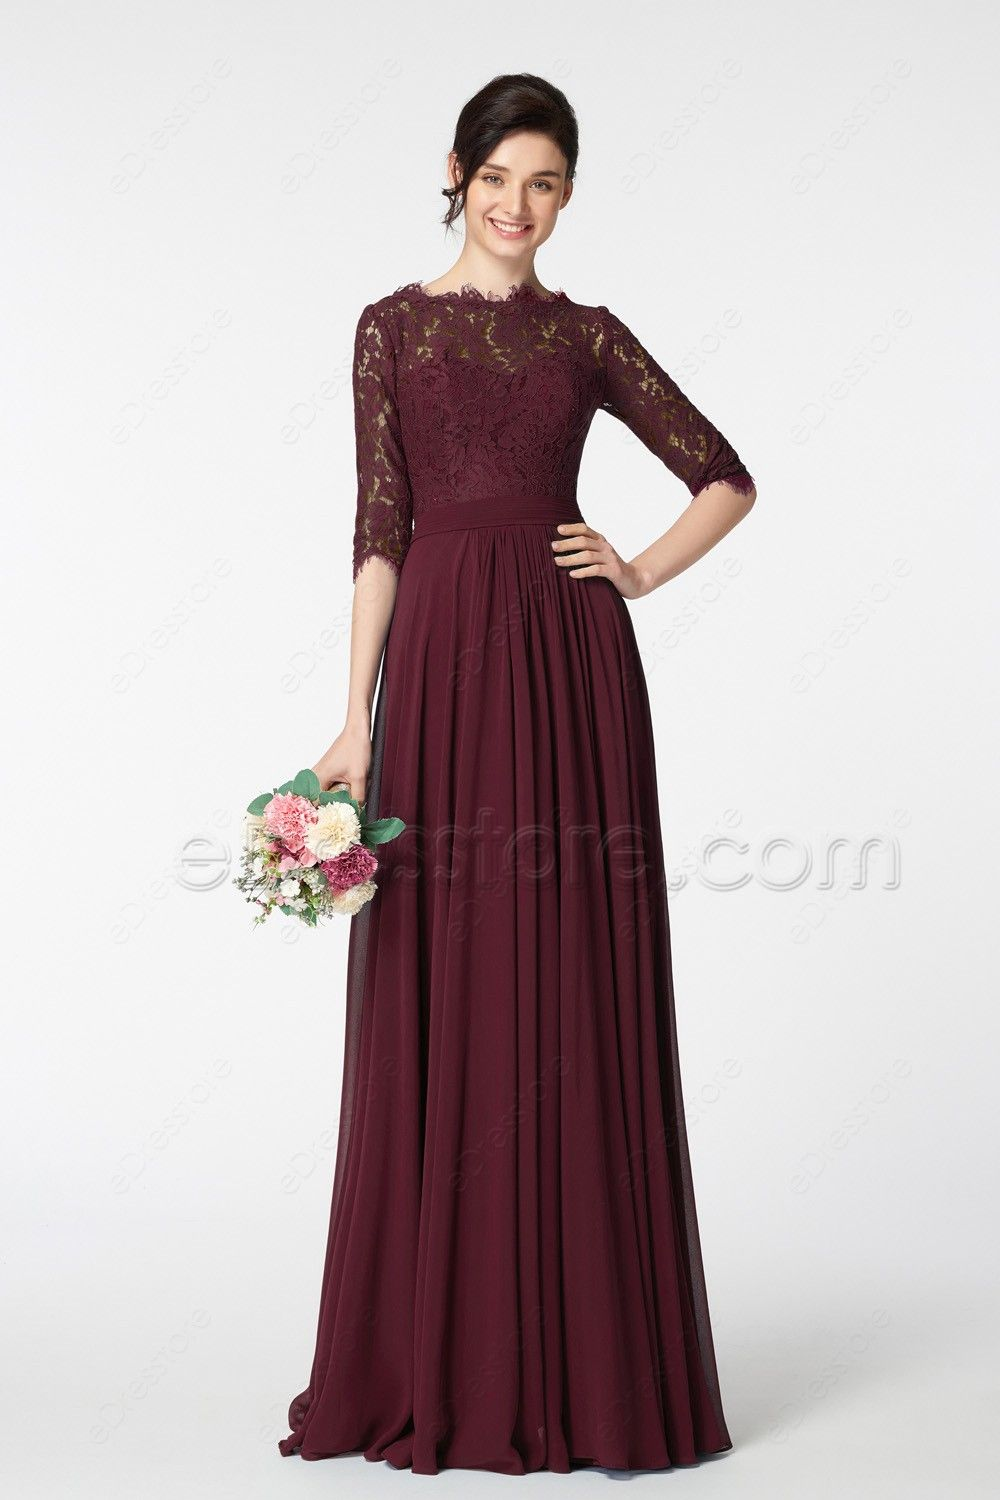 b72b591dbdc0 The dark burgundy prom dress is made of lace and chiffon fabric, featuring  lace scalloped boatneckline, lace top continued with pleated waist and A  Line ...